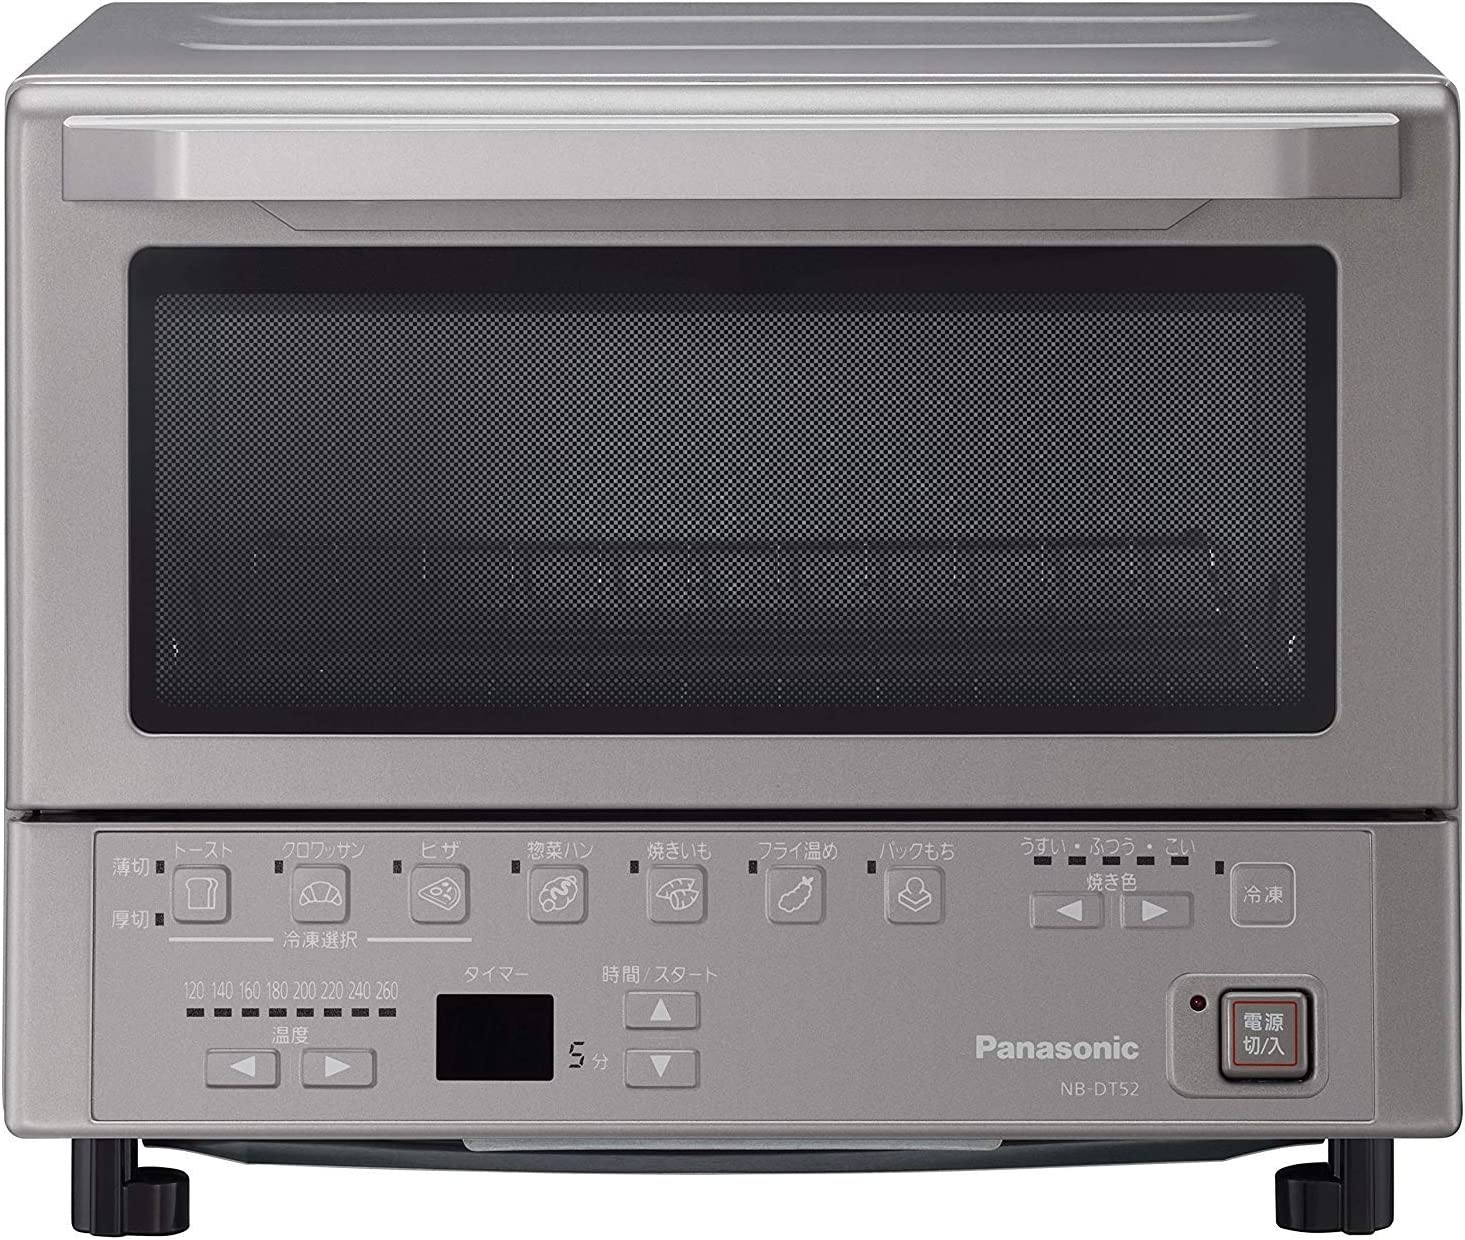 Panasonic Compact Oven (SILVER) NB-DT52-S【Japan Domestic Genuine Products】【Ships from Japan】